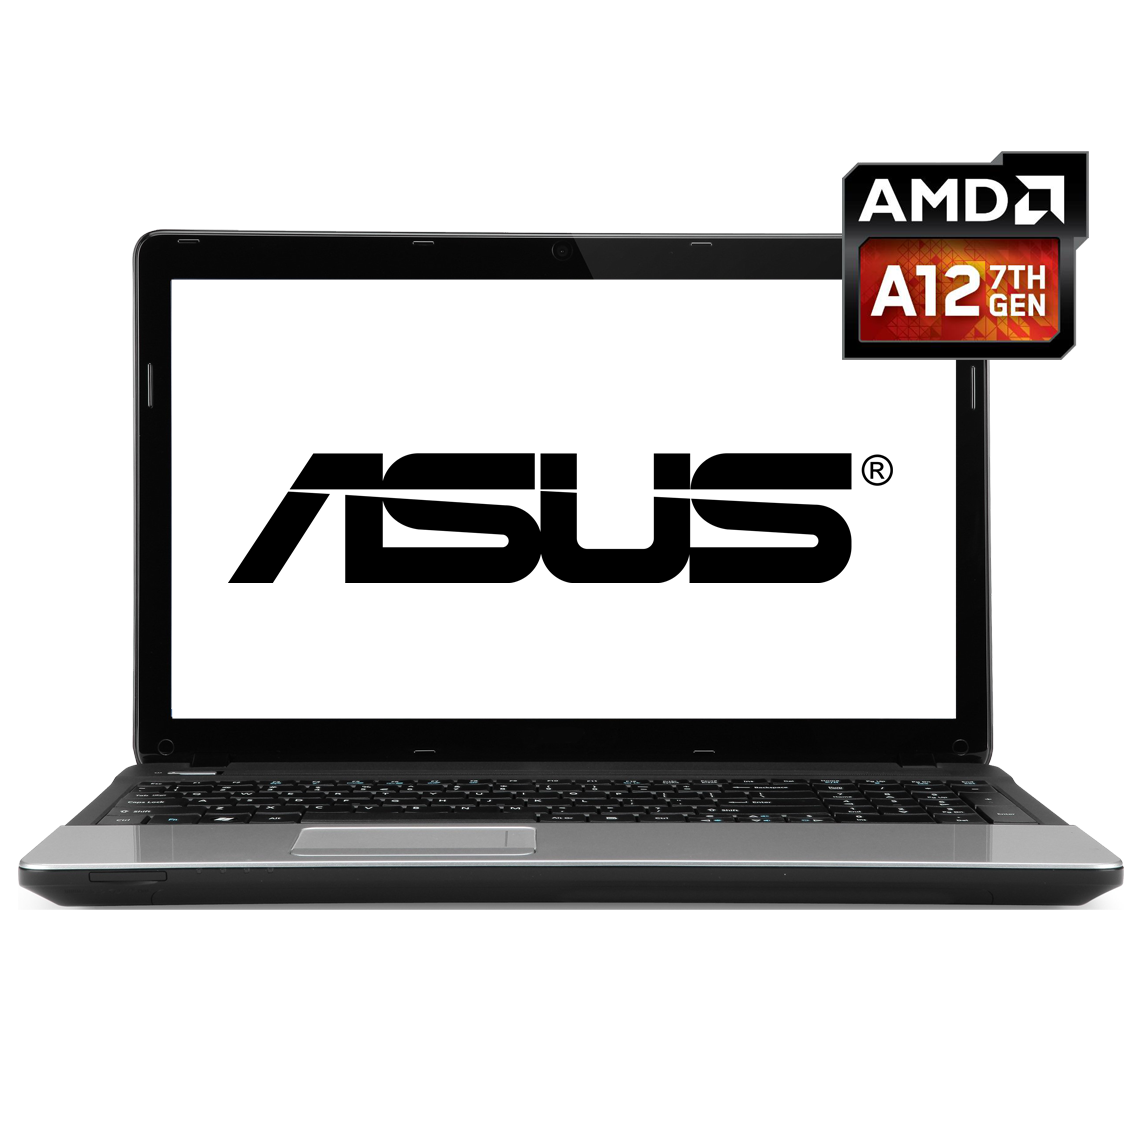 ASUS - 15.6 inch AMD A12